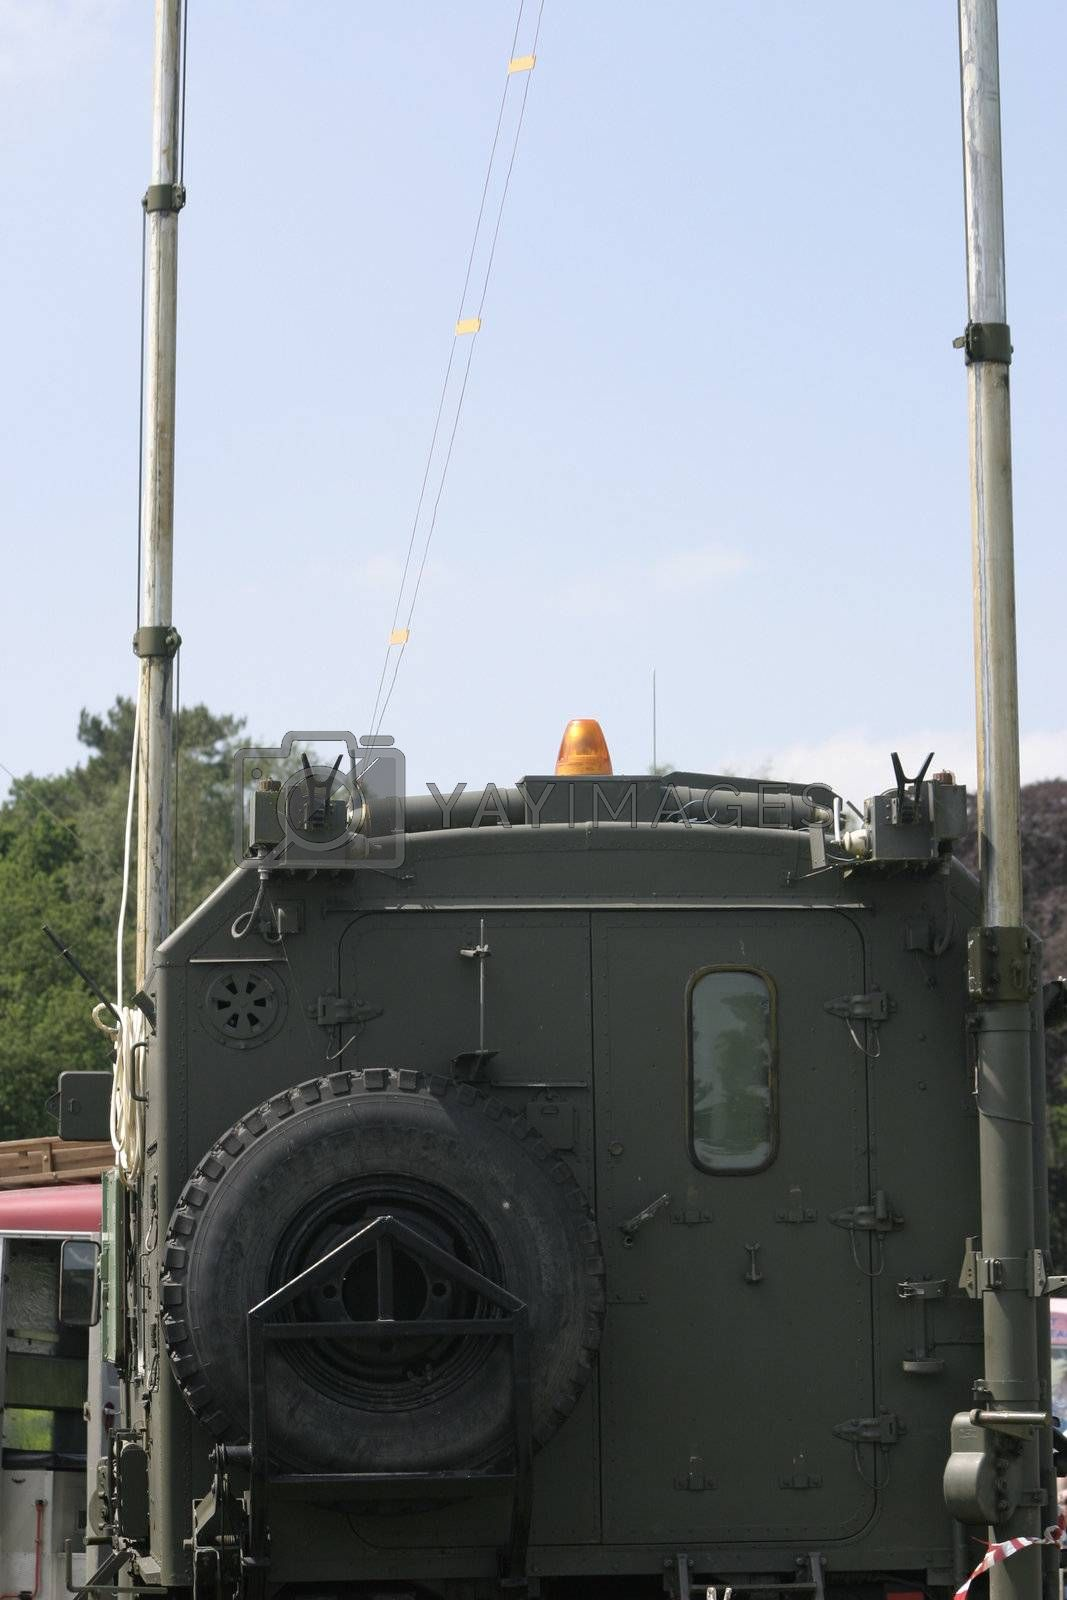 military truck with radio masts